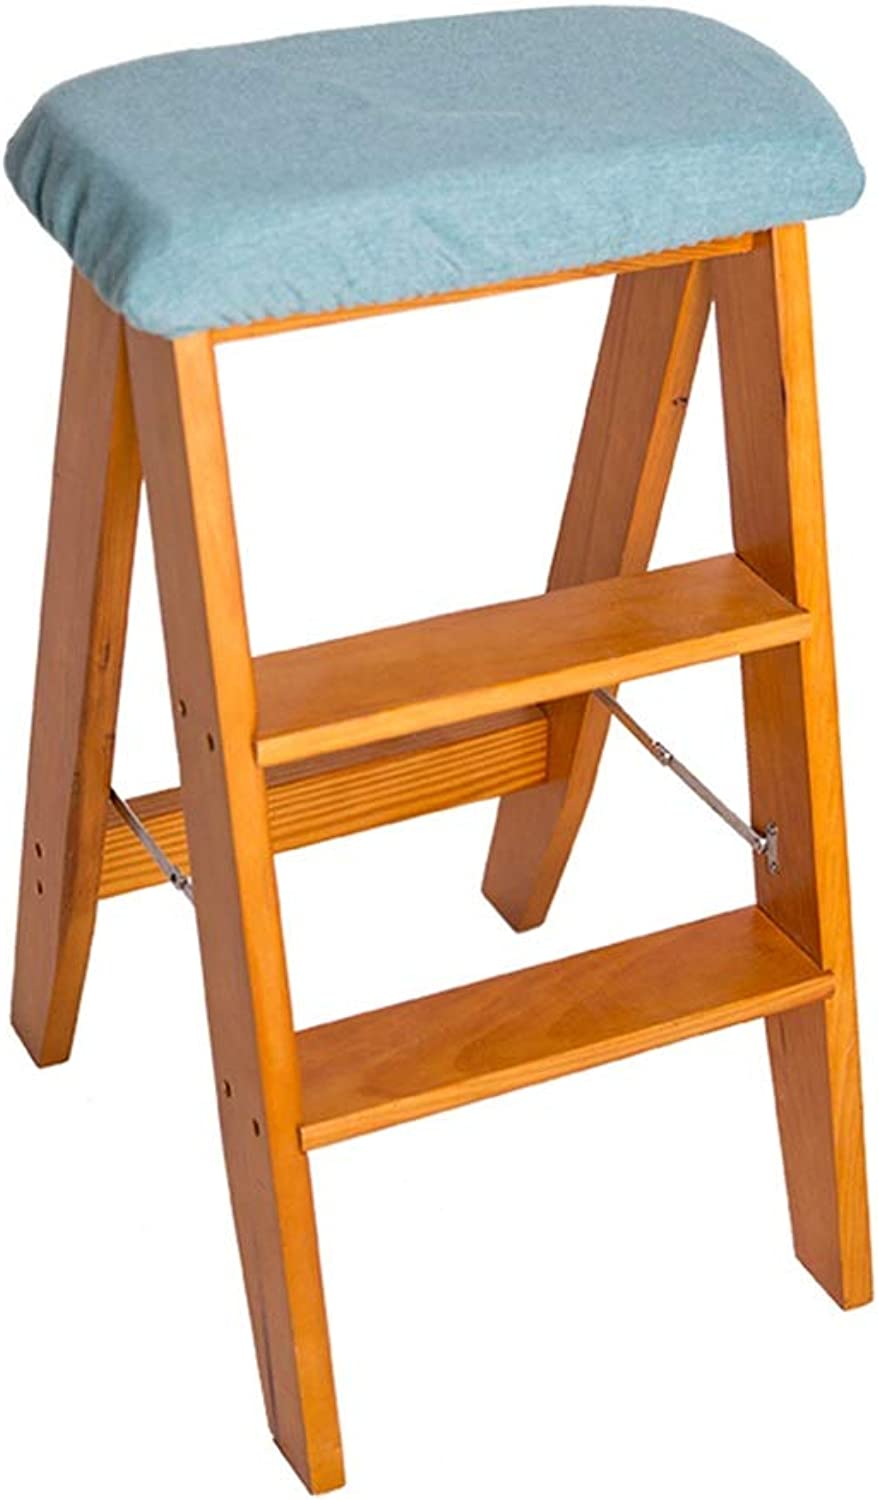 Stool Step Stool Ladder Multi-Function Folding Ladder Three-Step Portable Step Stool Home Study Folding Ladder Pine Creative Stool (color   orange, Size   38  34  61CM)